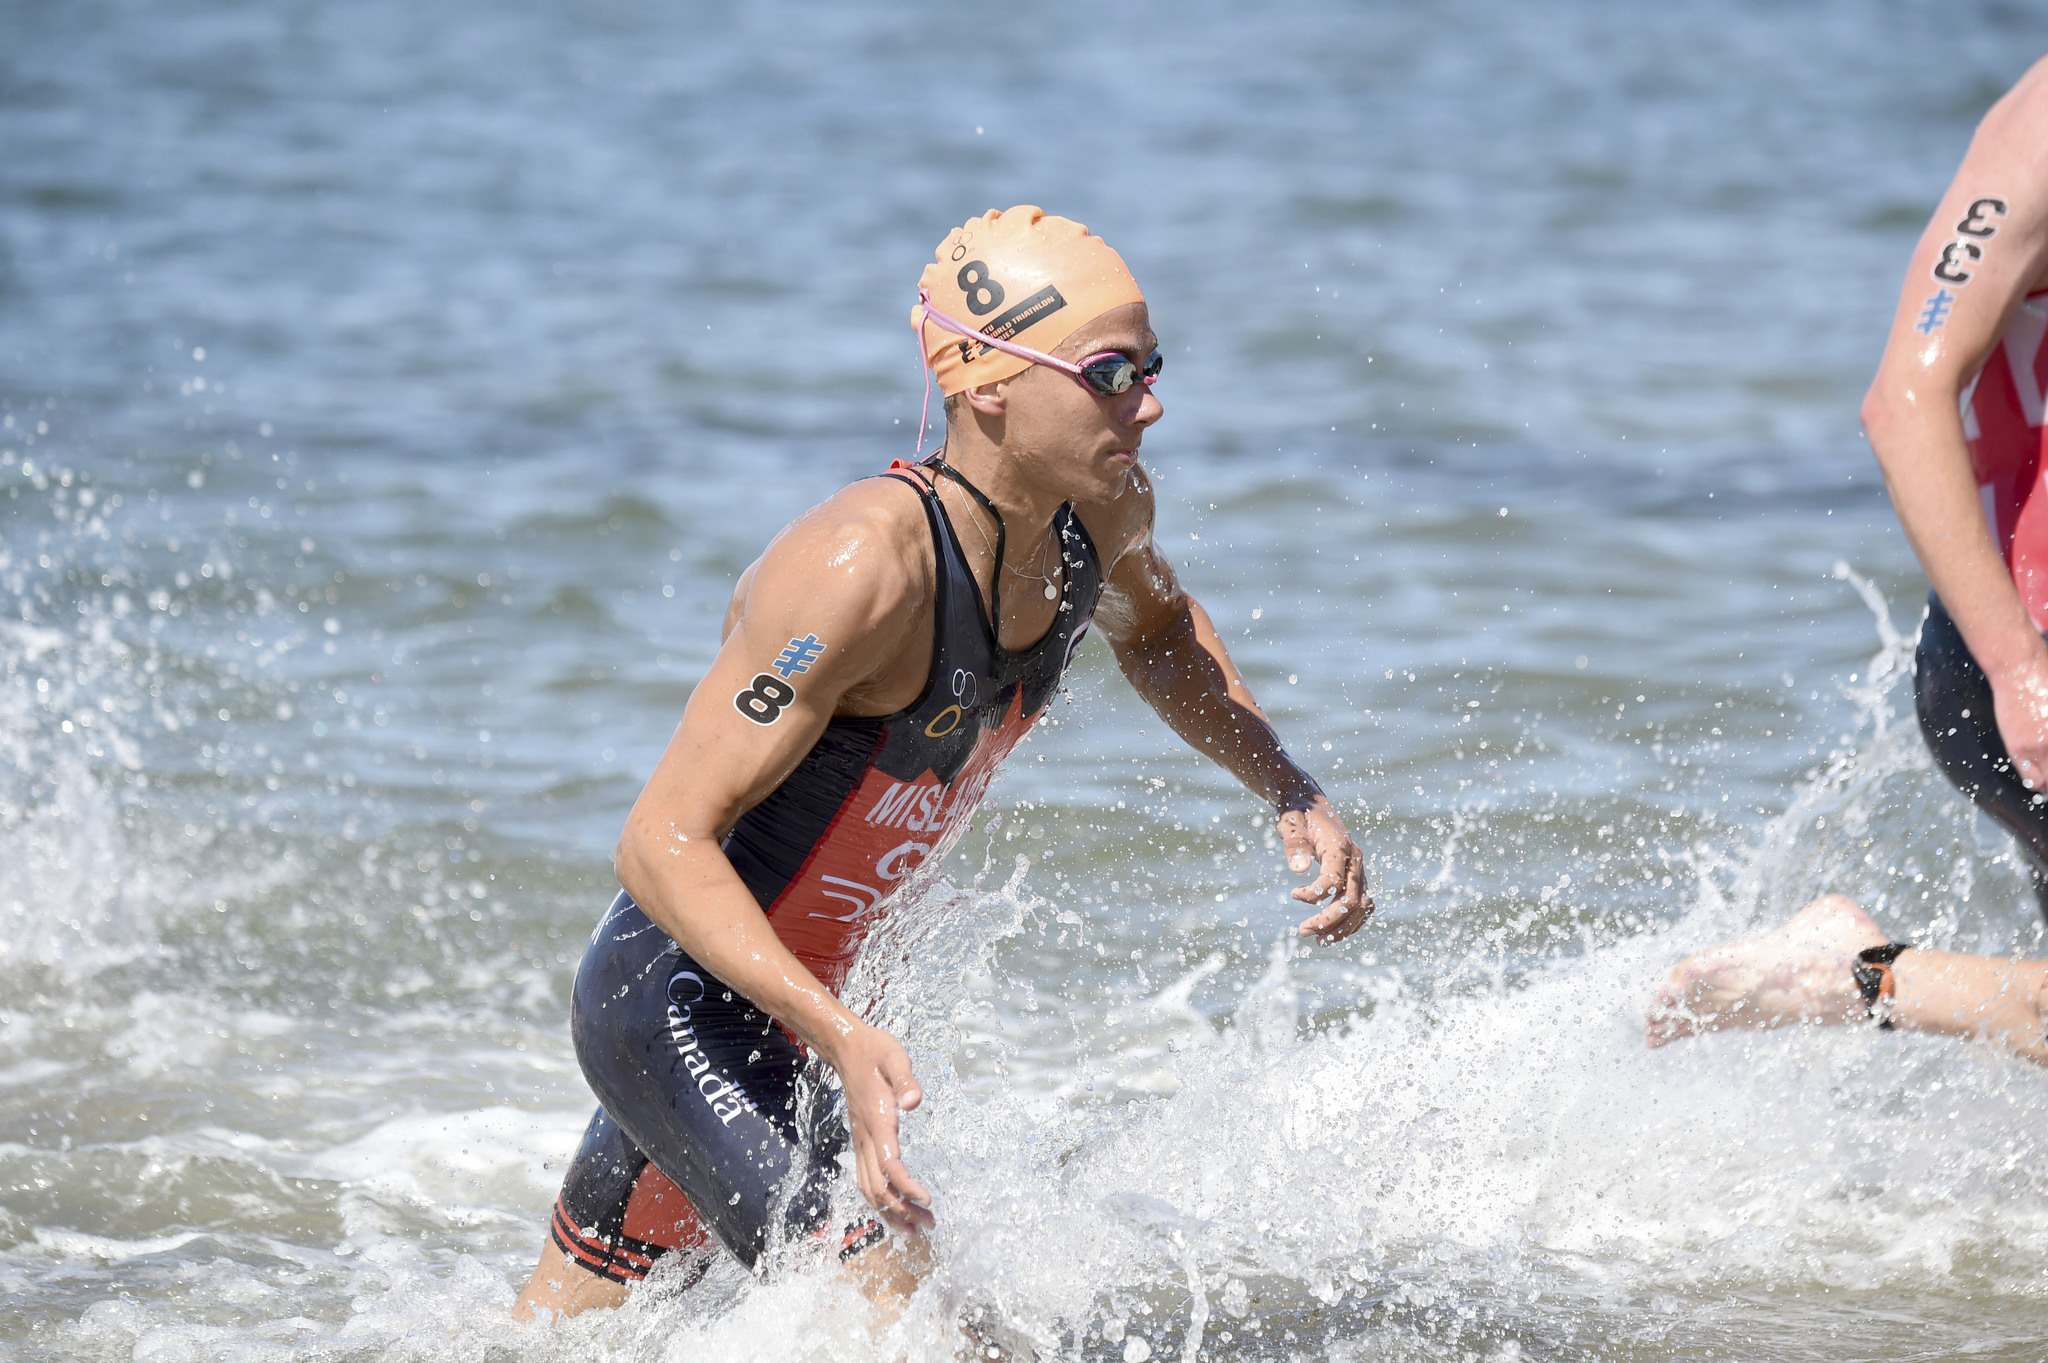 DELLY CARR PHOTO</p><p>Tyler Mislawchuk of Oak Bluff, Manitoba, was named to the Olympic team by Triathlon Canada and the Canadian Olympic Committee. He will represent Canada at the 2018 Commonwealth Games in Australia.</p>